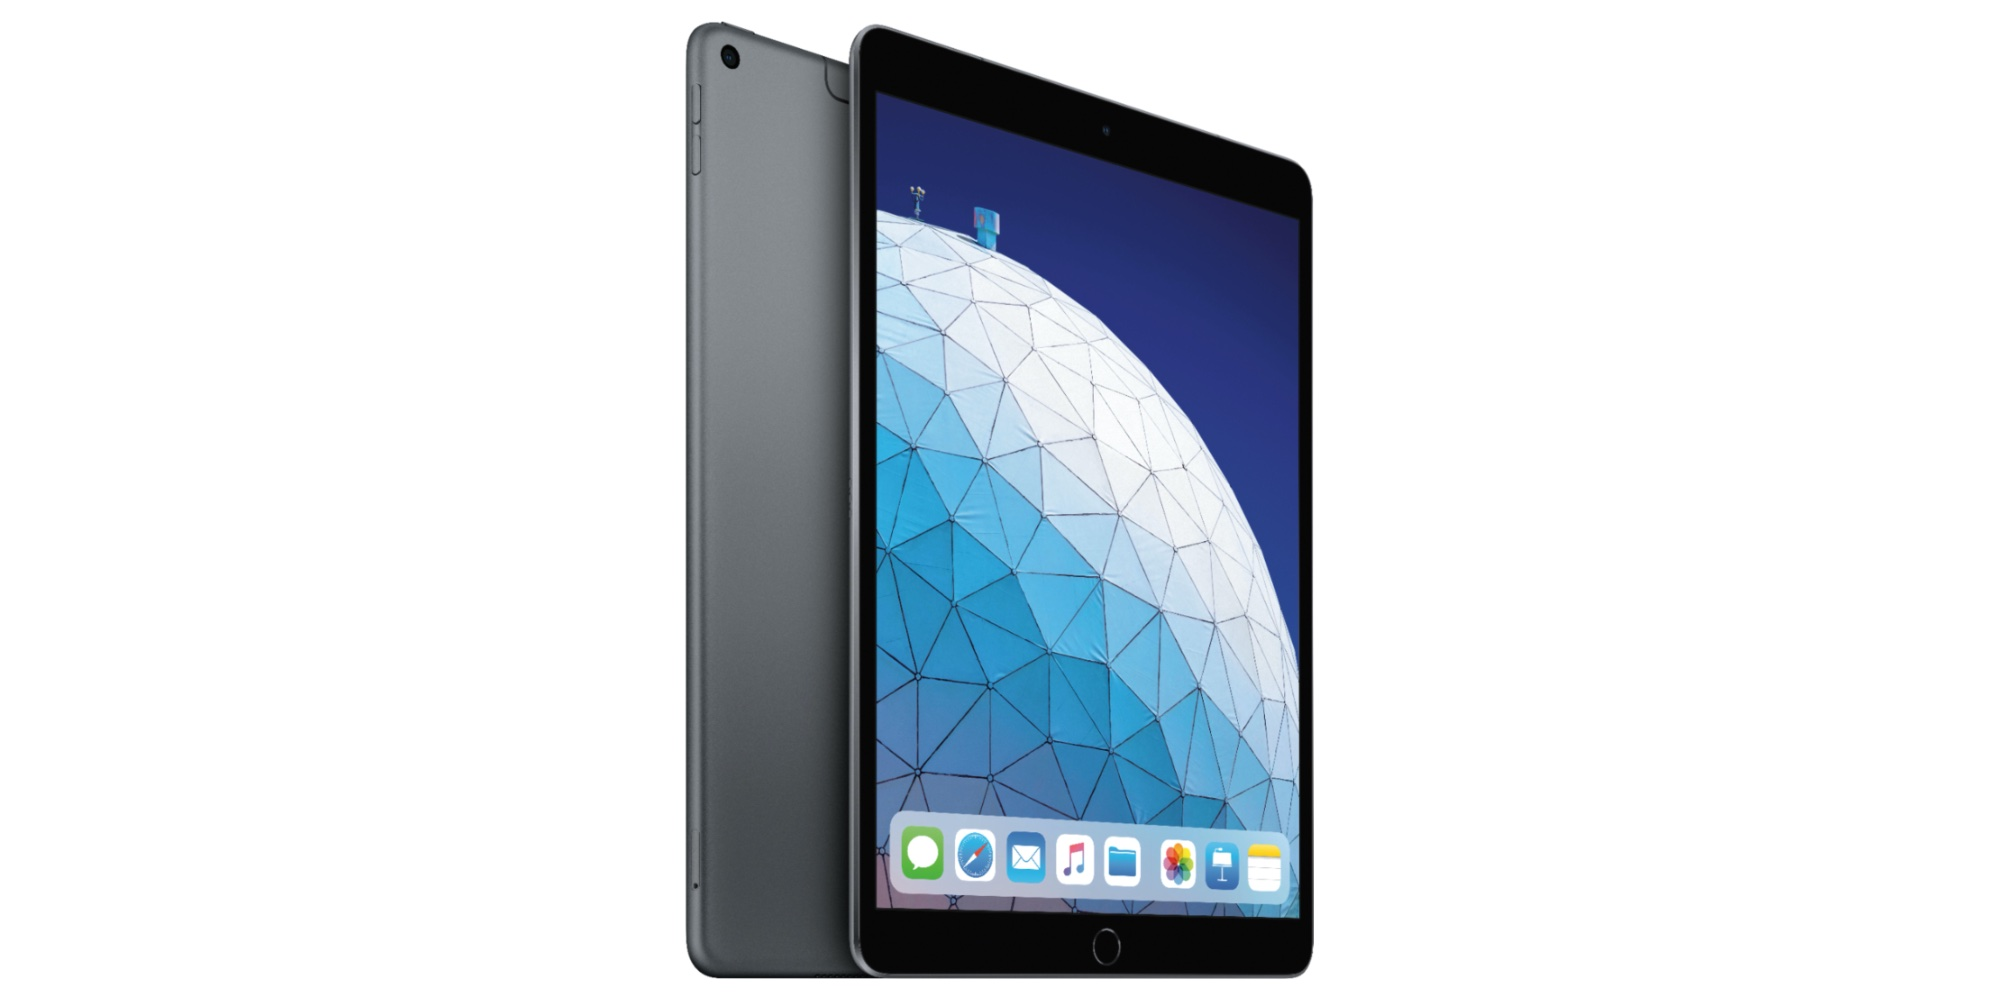 10.5-inch iPad Air at its lowest price ...